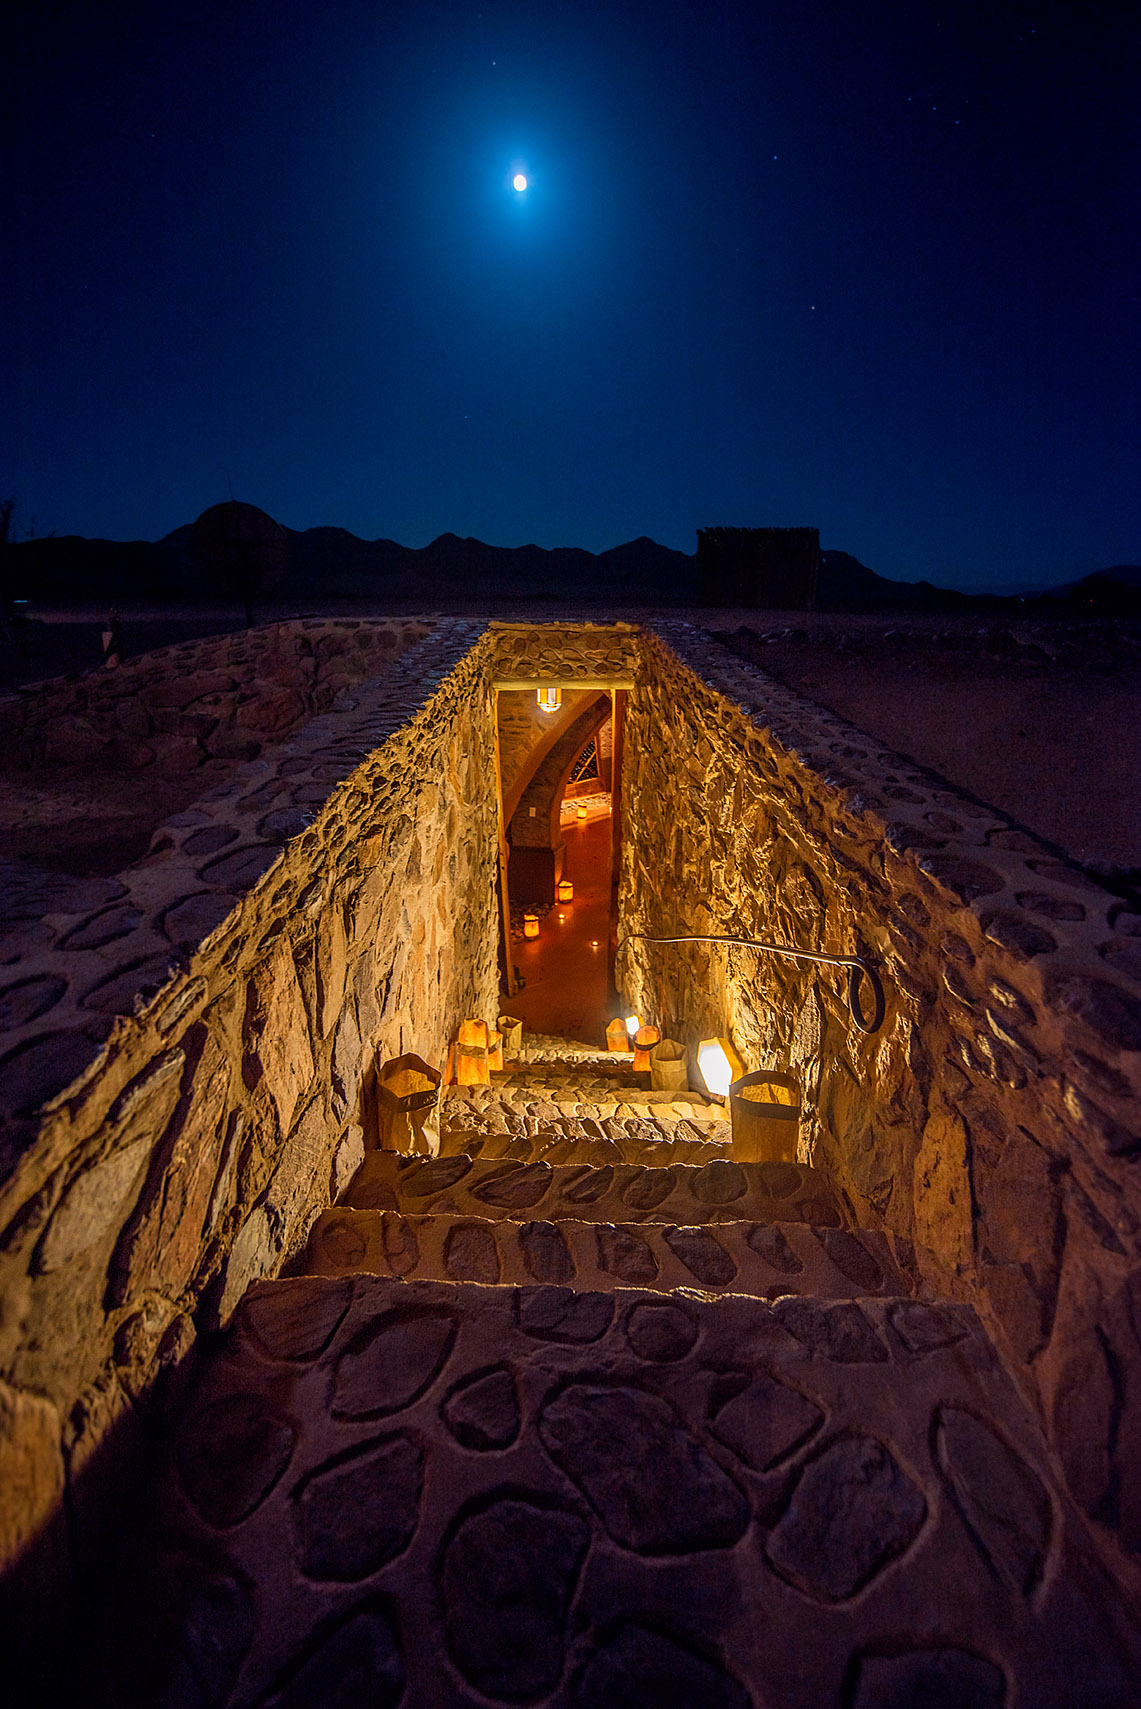 A full moon rises over the stairs leading to Le Mirage's wine cellar.